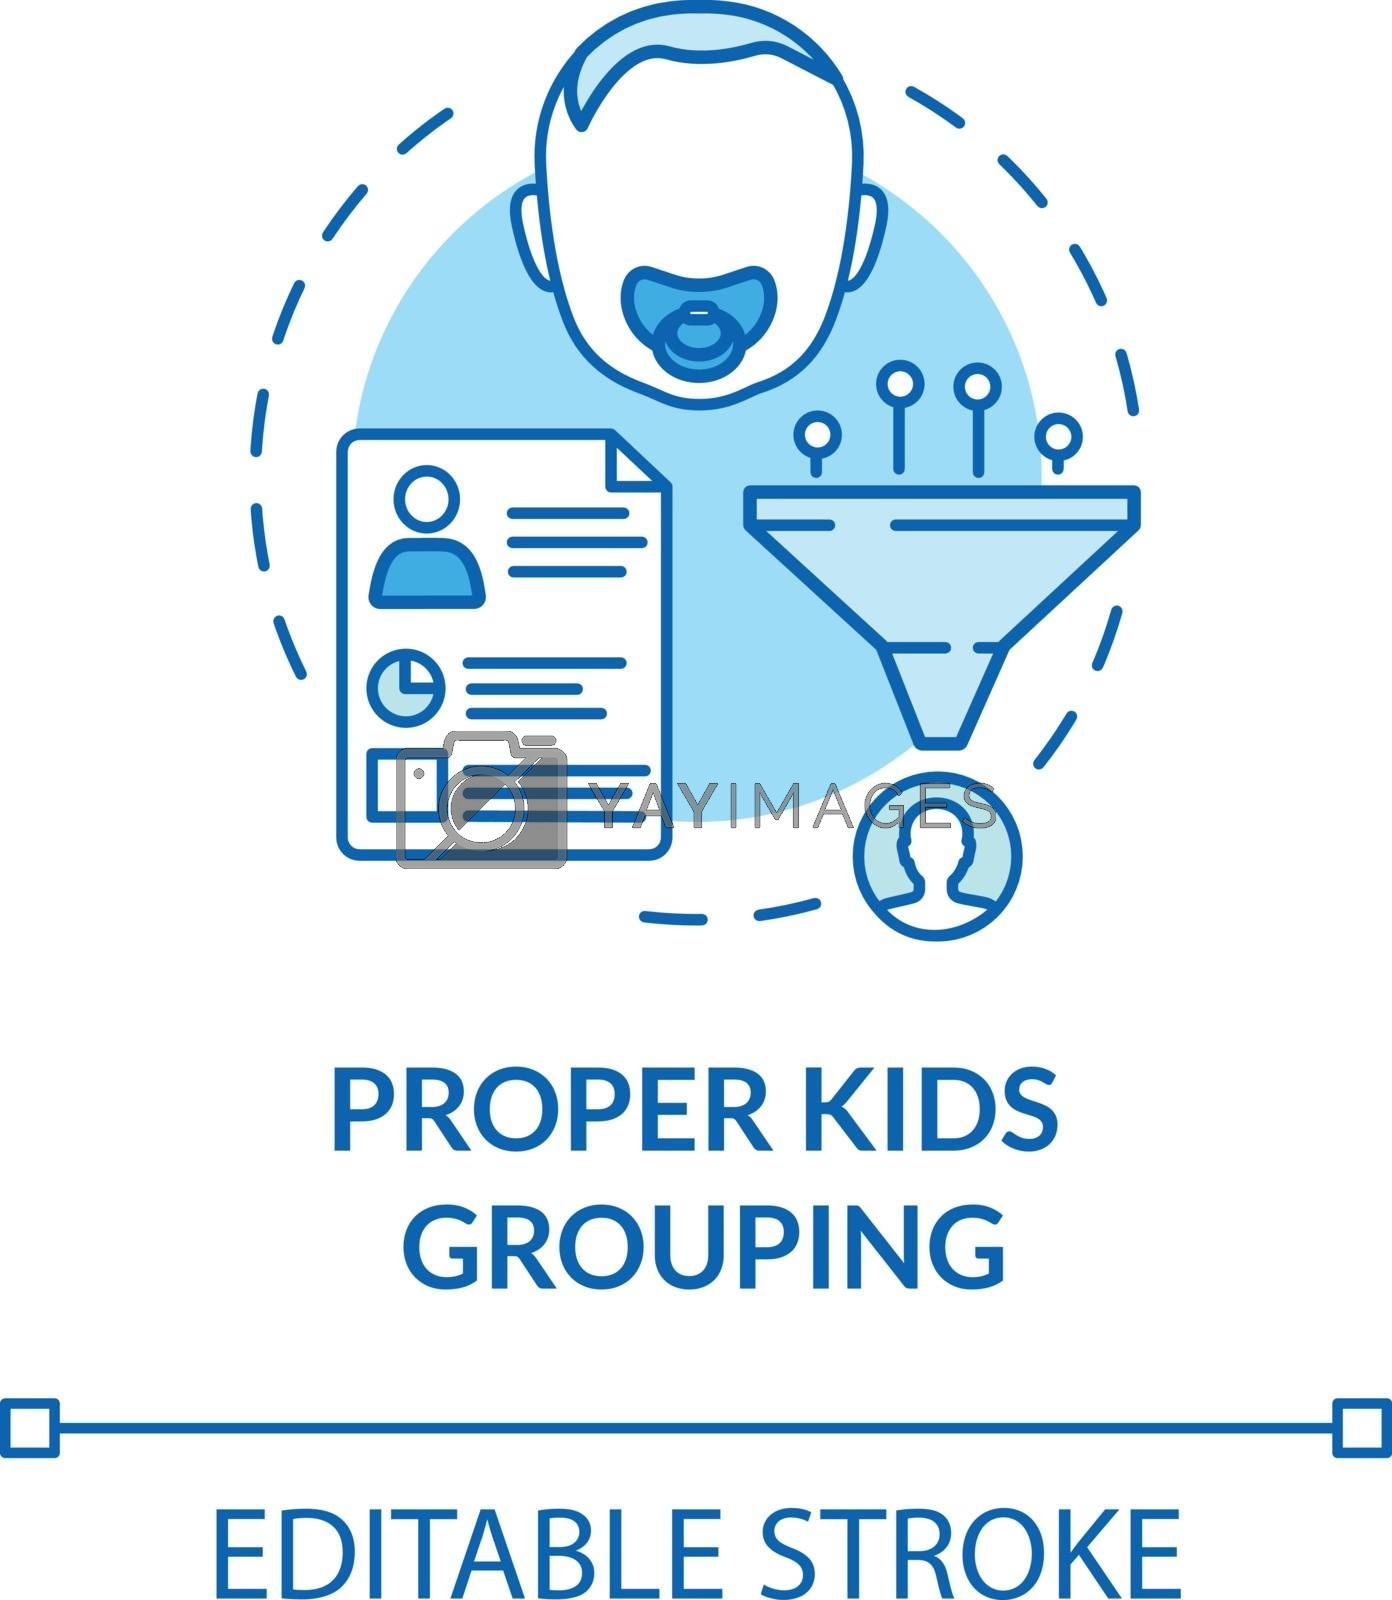 Toddlers groups concept icon. Proper kids grouping idea thin line illustration. Children in kindergartens. Early childhood education. Vector isolated outline RGB color drawing. Editable stroke